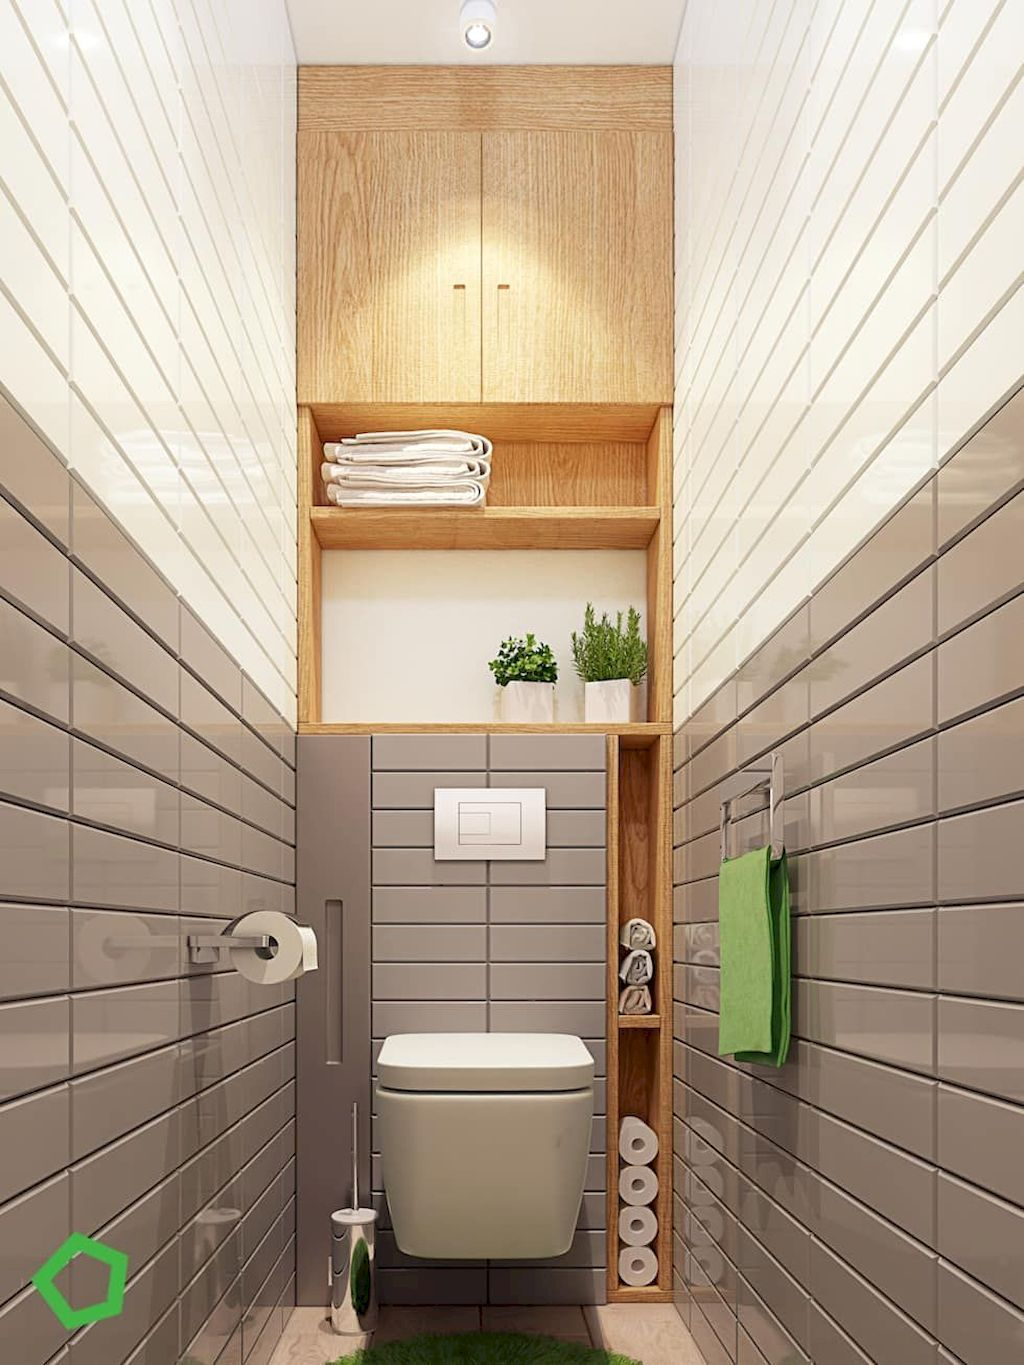 Space Saving Toilet Design For Small Bathroom Smalltoiletroom